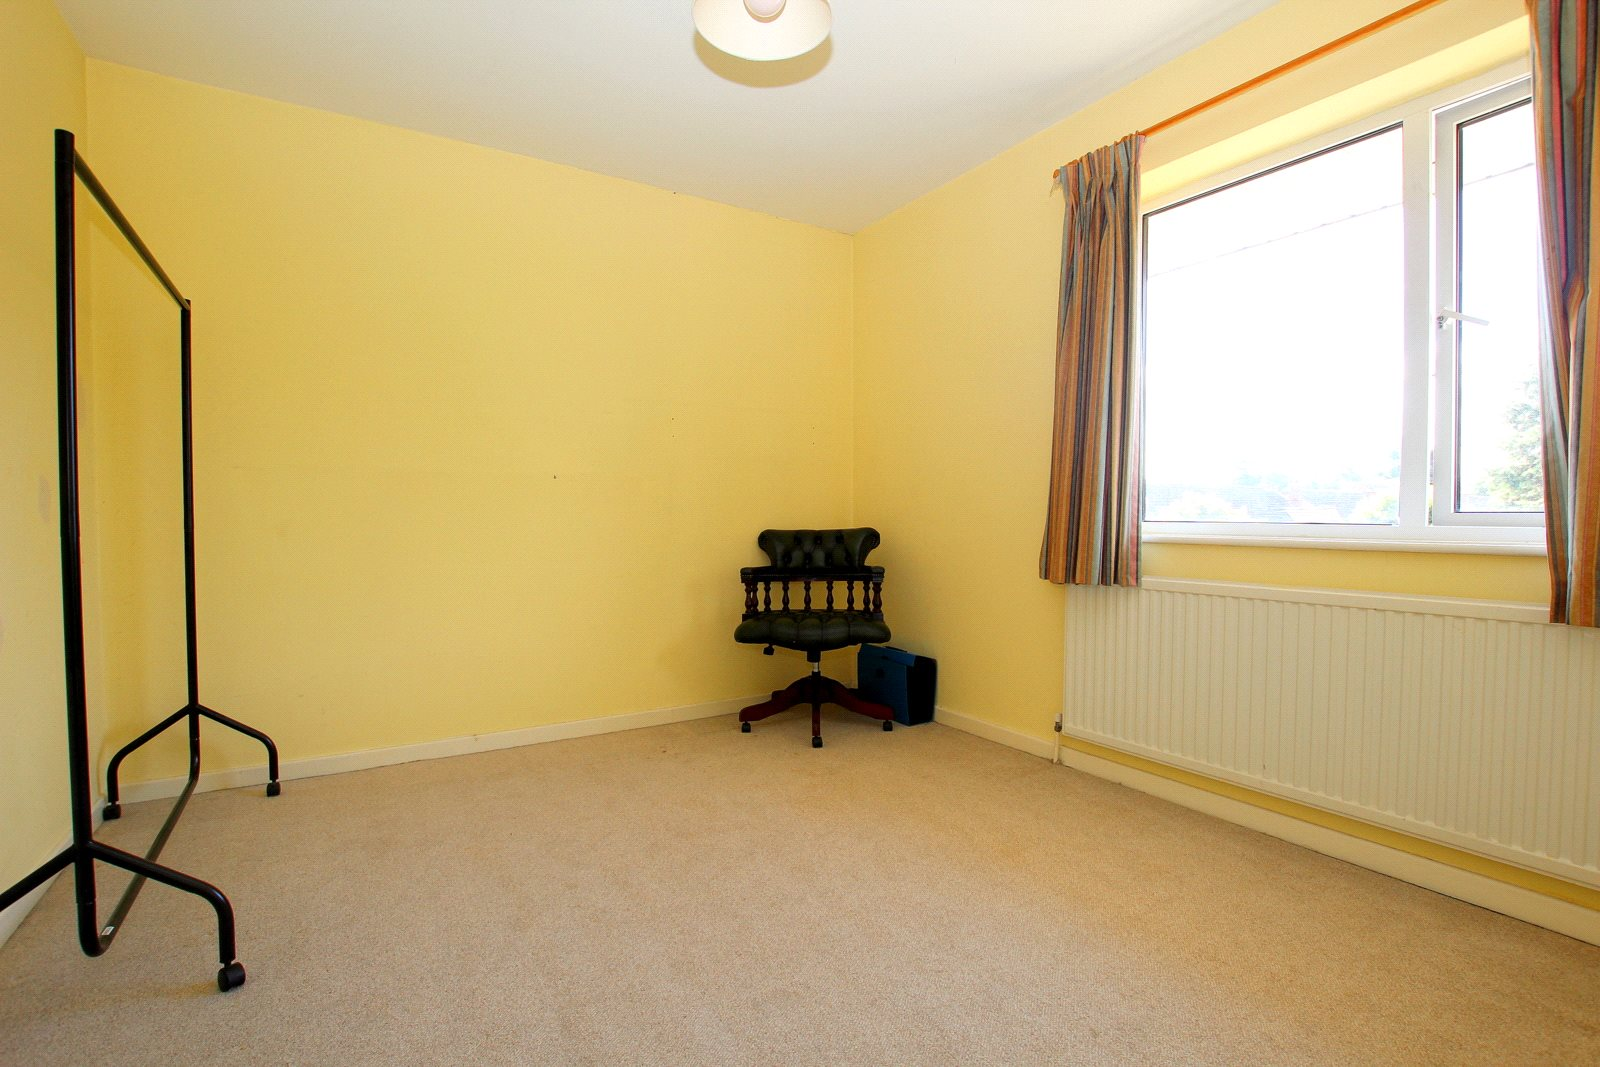 Cj Hole Gloucester 4 Bedroom House For Sale In Rivermead